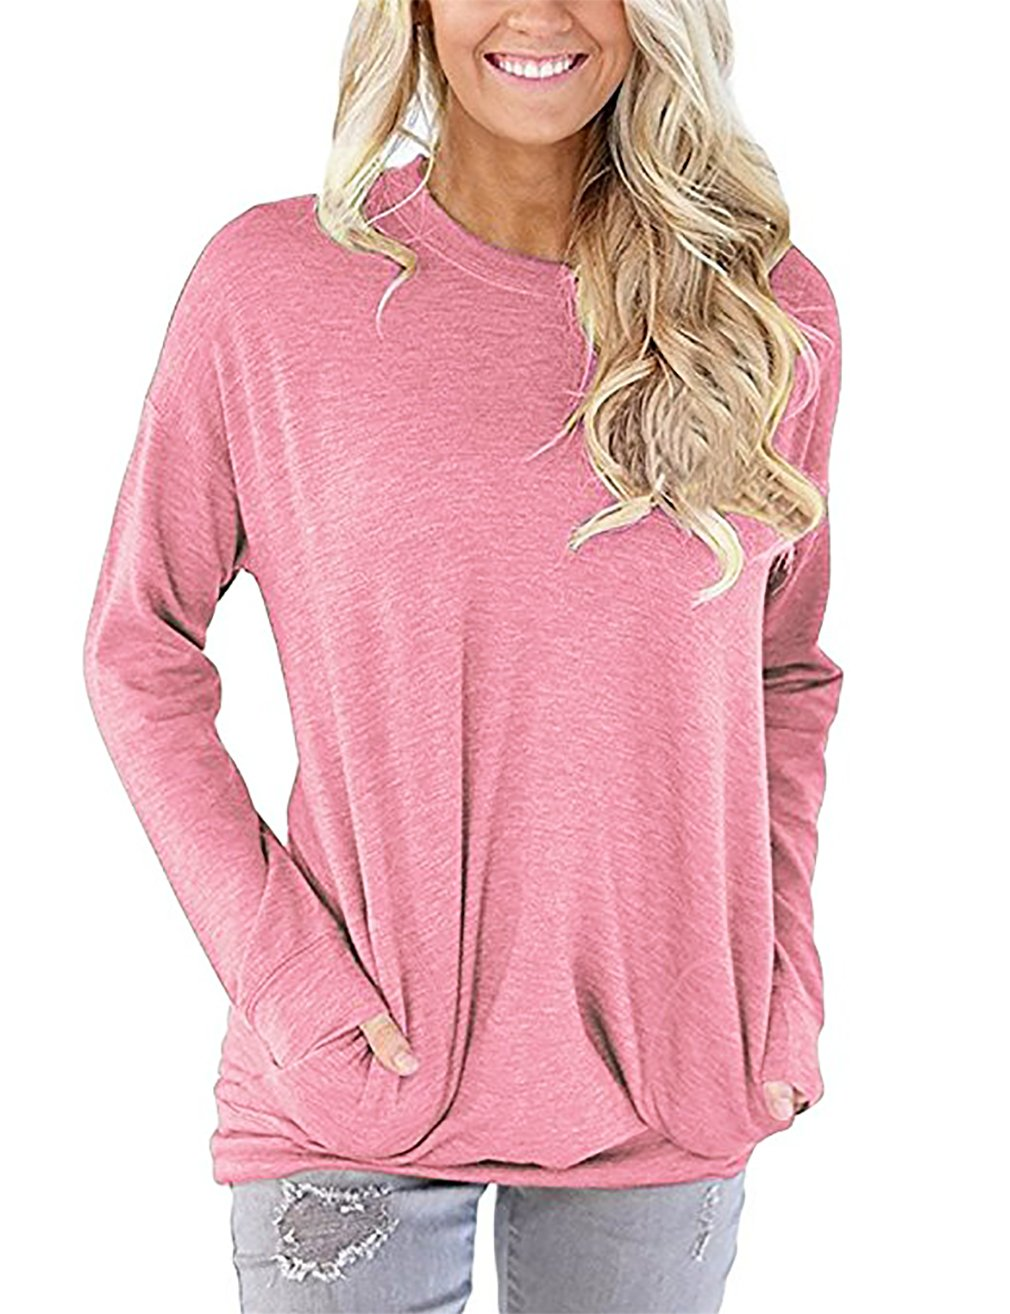 LNIMIKIY Women Pullover Sweatshirt, Ladies Business Casual Clothes Long Sleeve Round Neck Sweatshirt Loose T Shirt Blouses Tops Pink XX-Large